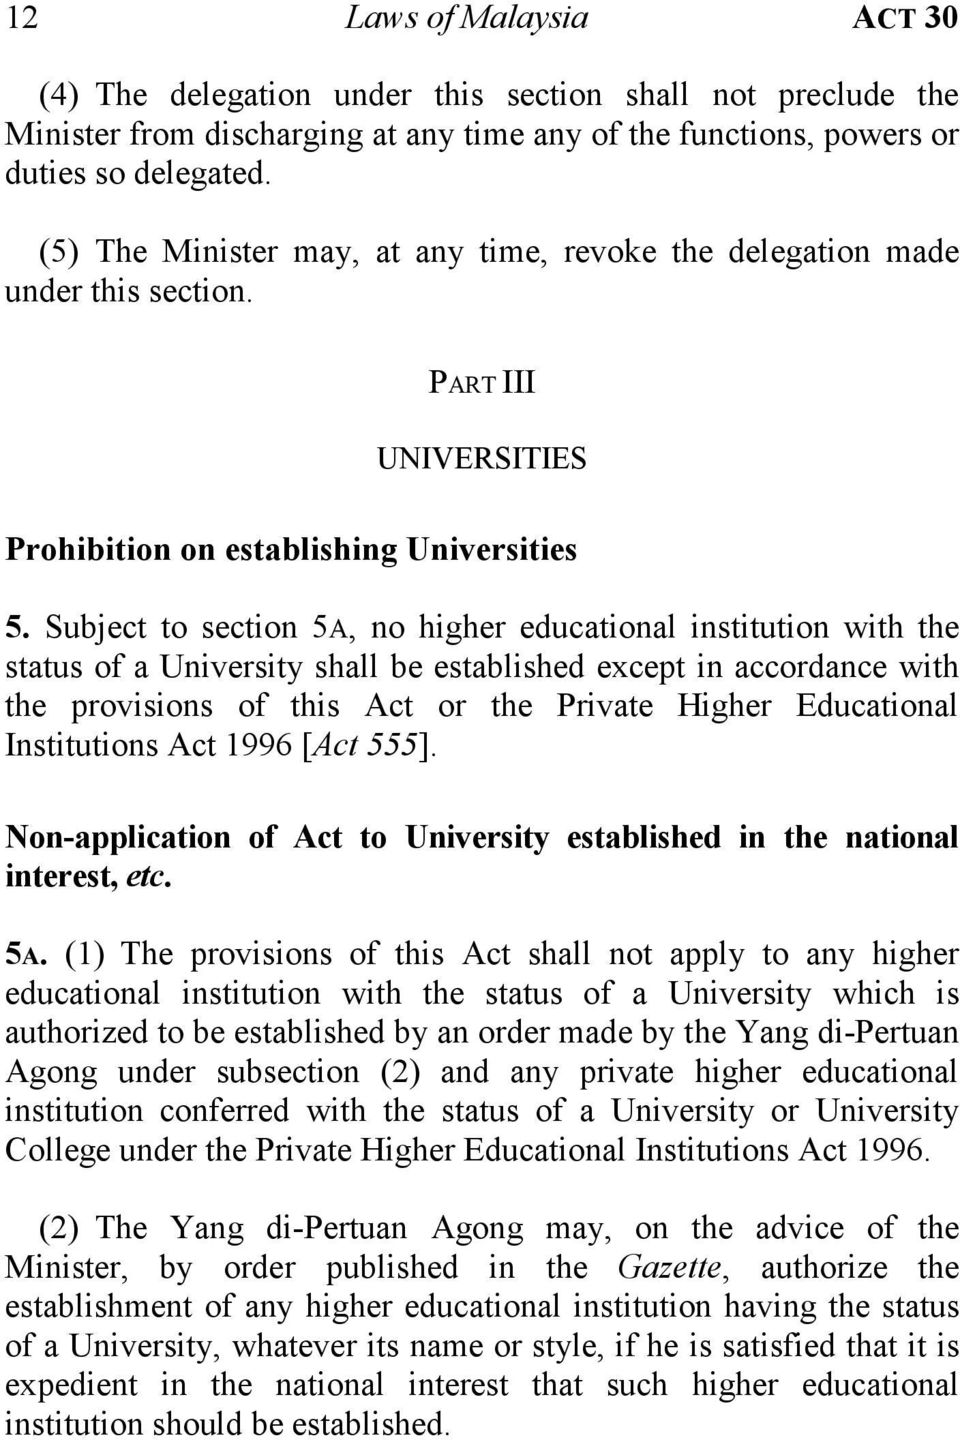 Subject to section 5A, no higher educational institution with the status of a University shall be established except in accordance with the provisions of this Act or the Private Higher Educational